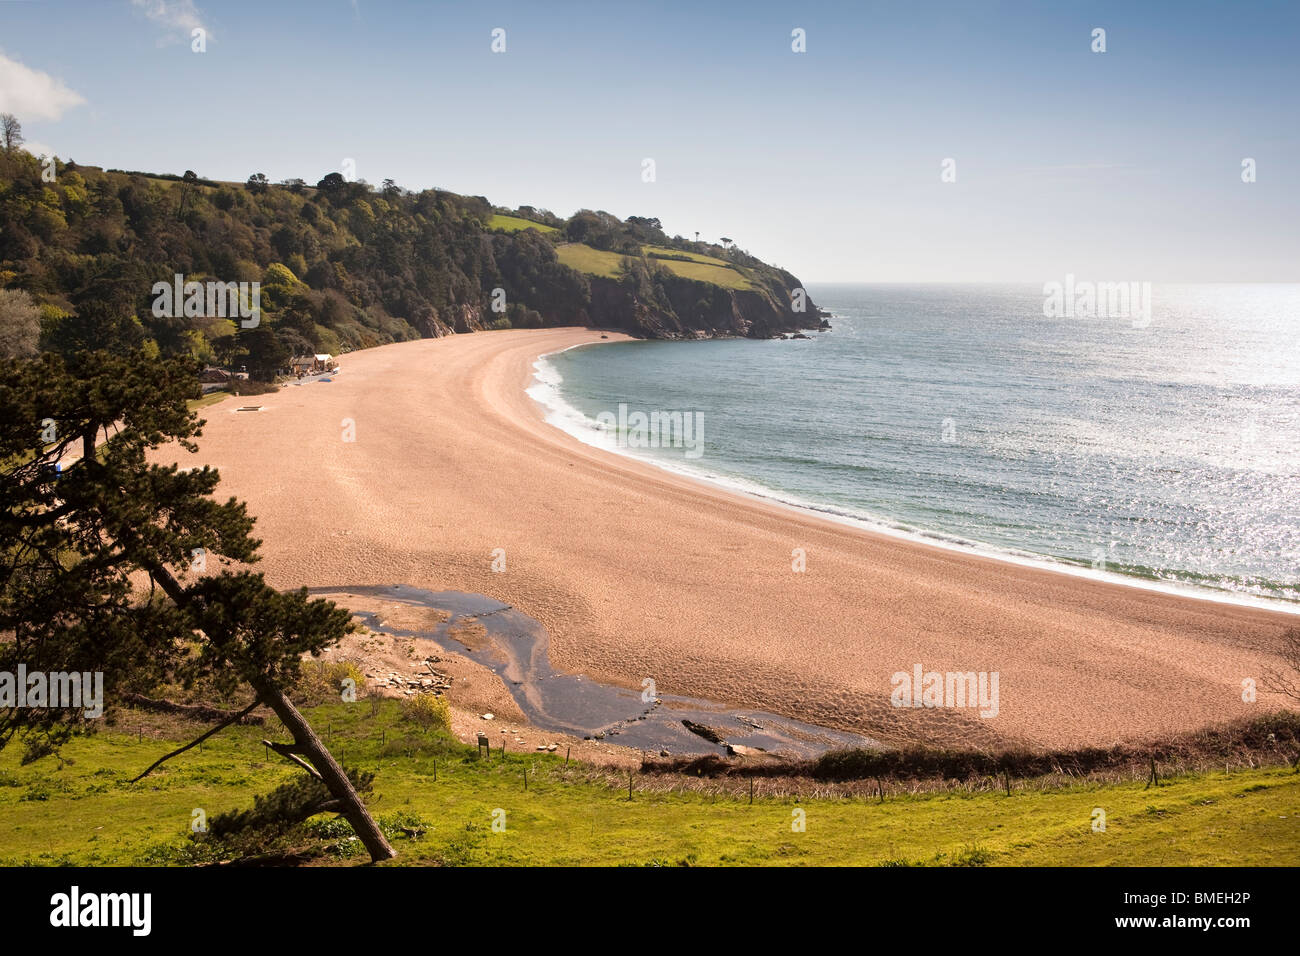 UK, England, Devon, south coast, Blackpool sands private beach near Slapton Sands - Stock Image